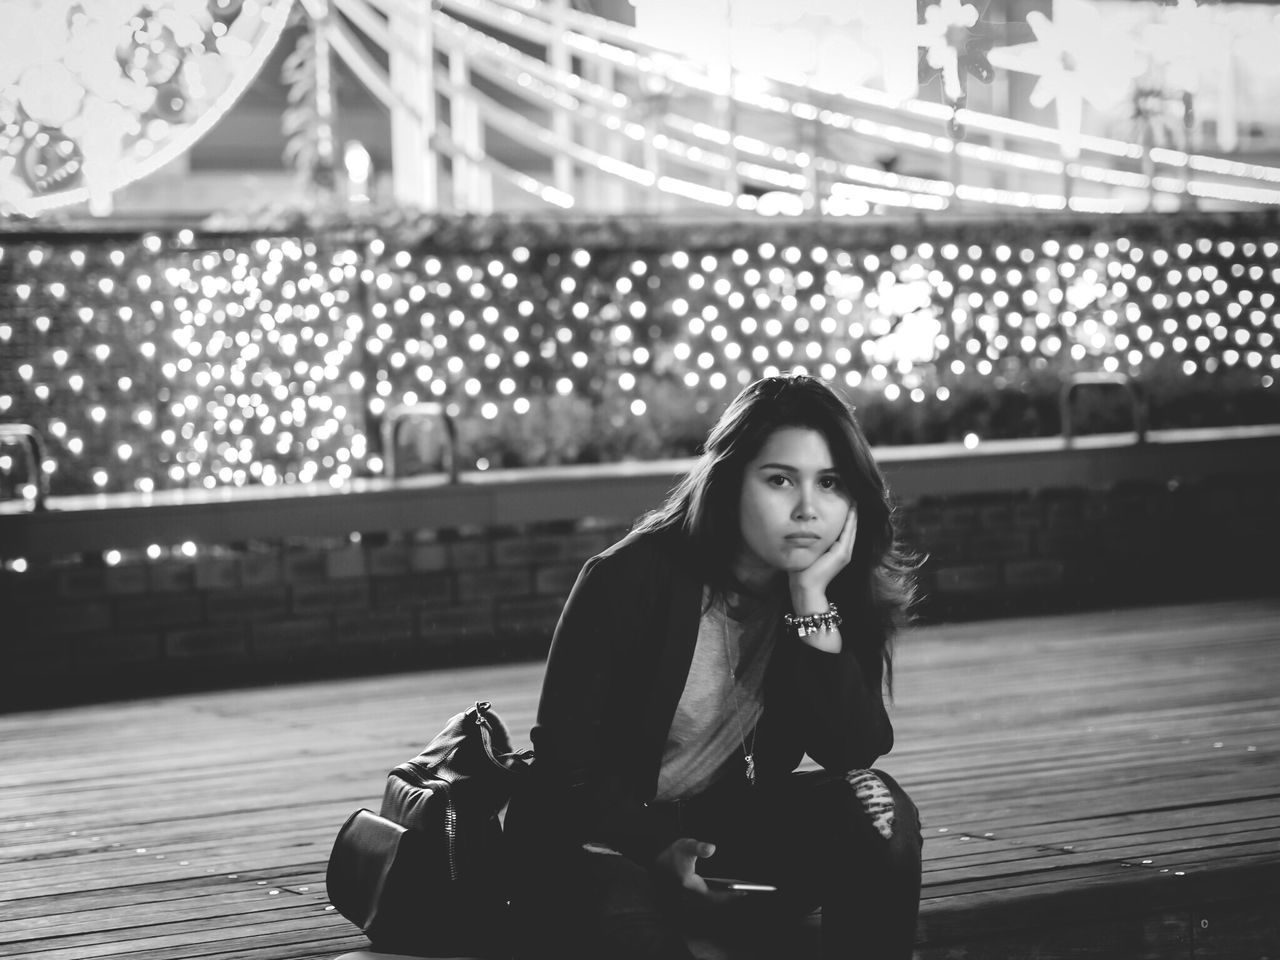 real people, young adult, one person, young women, lifestyles, sitting, focus on foreground, leisure activity, looking at camera, front view, bridge - man made structure, beautiful woman, portrait, outdoors, night, full length